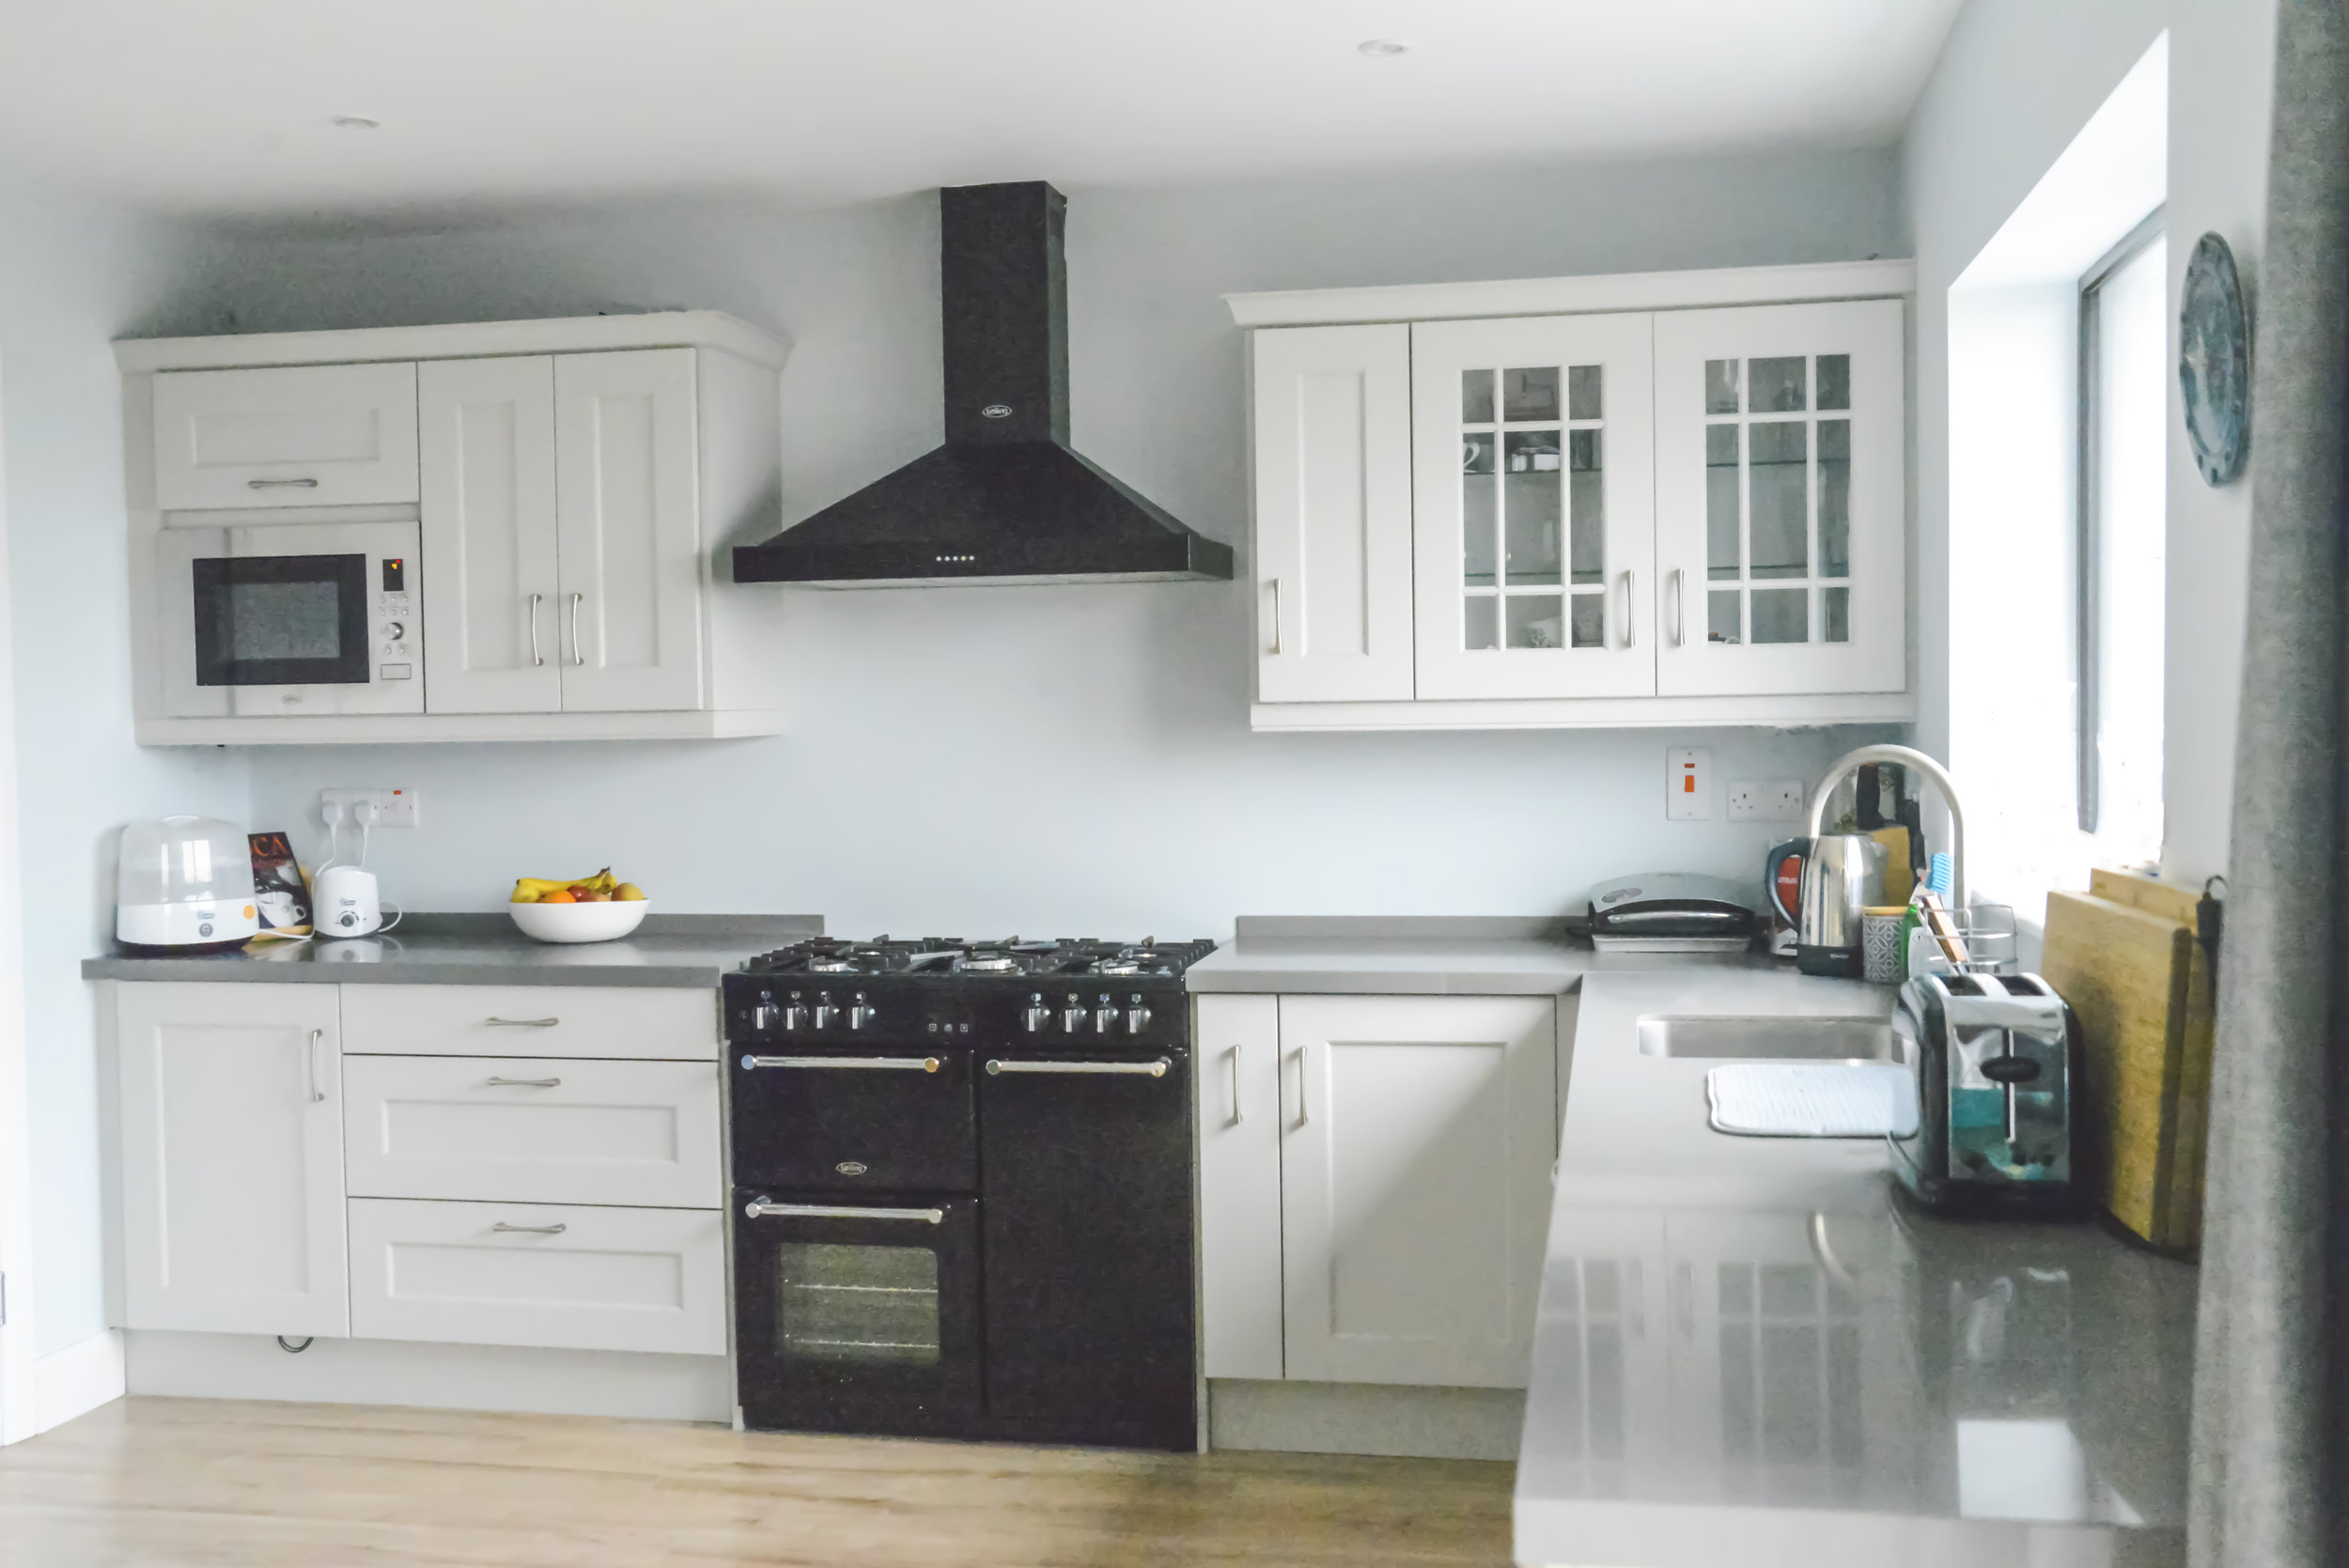 A Maxtop Warm Grey worktop installed in Cork